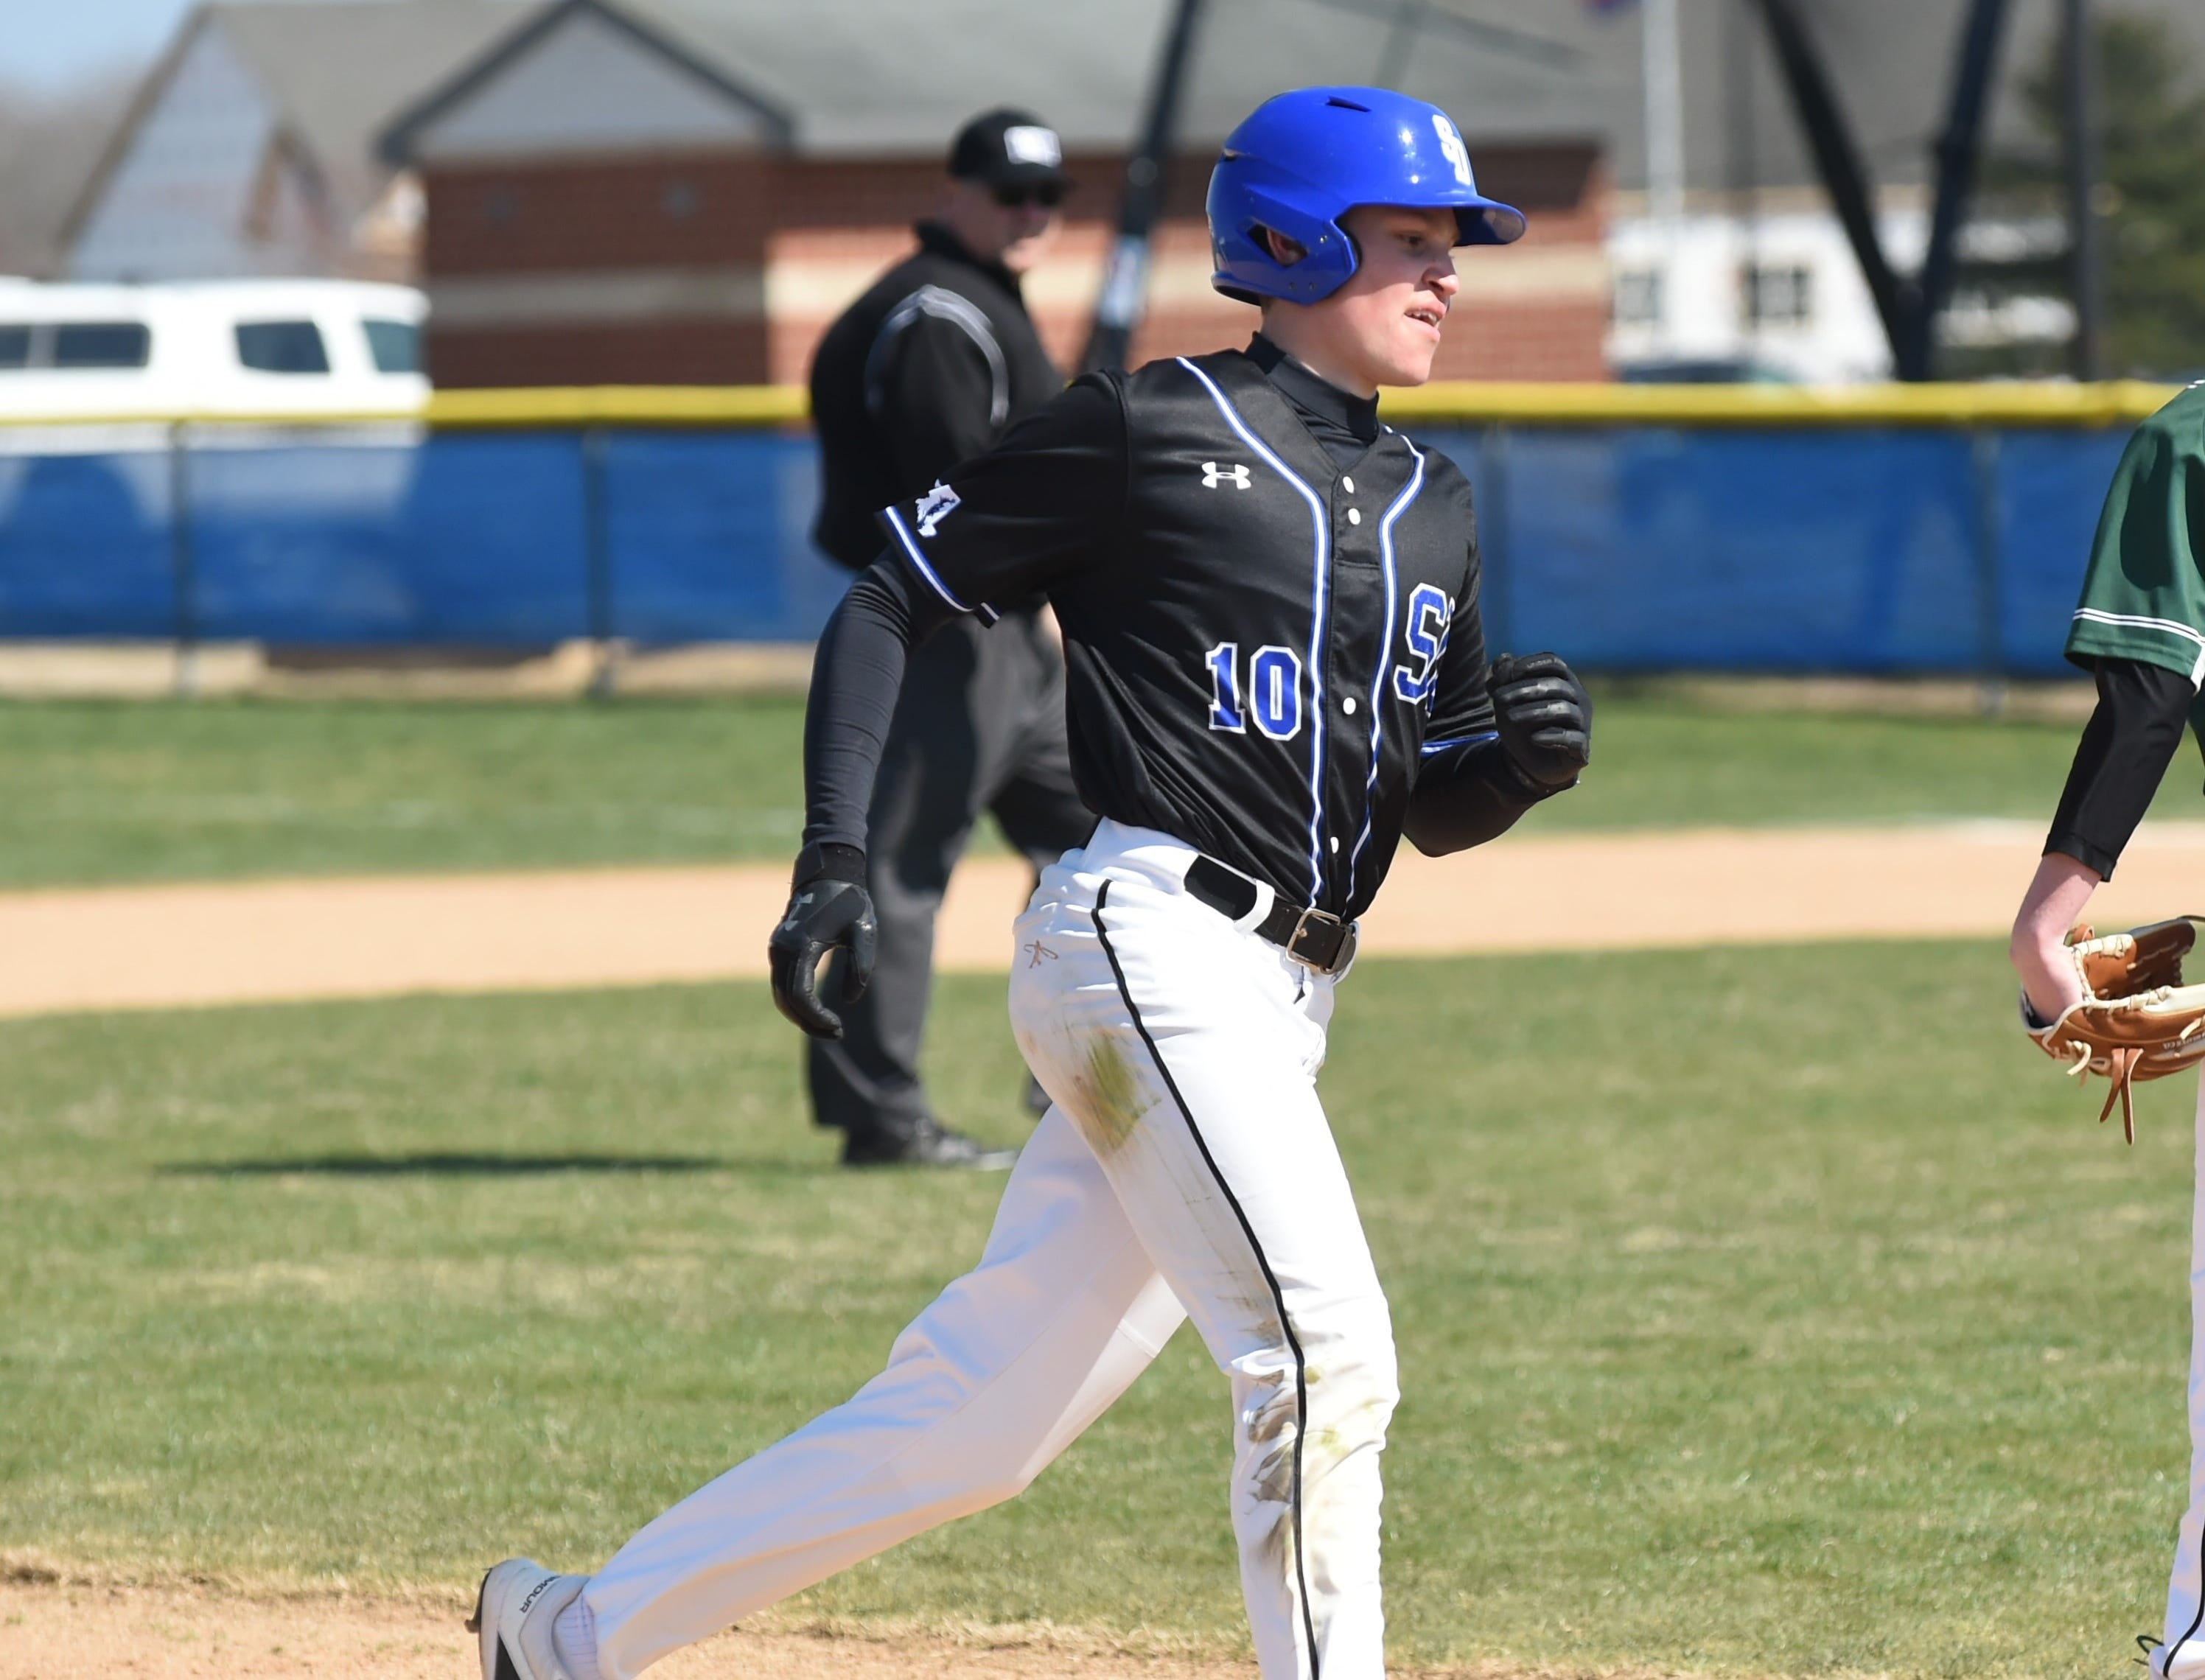 Stephen Decatur's Jack Rosenberg heads home after a home run against Parkside on Wednesday, April 3, 2019.